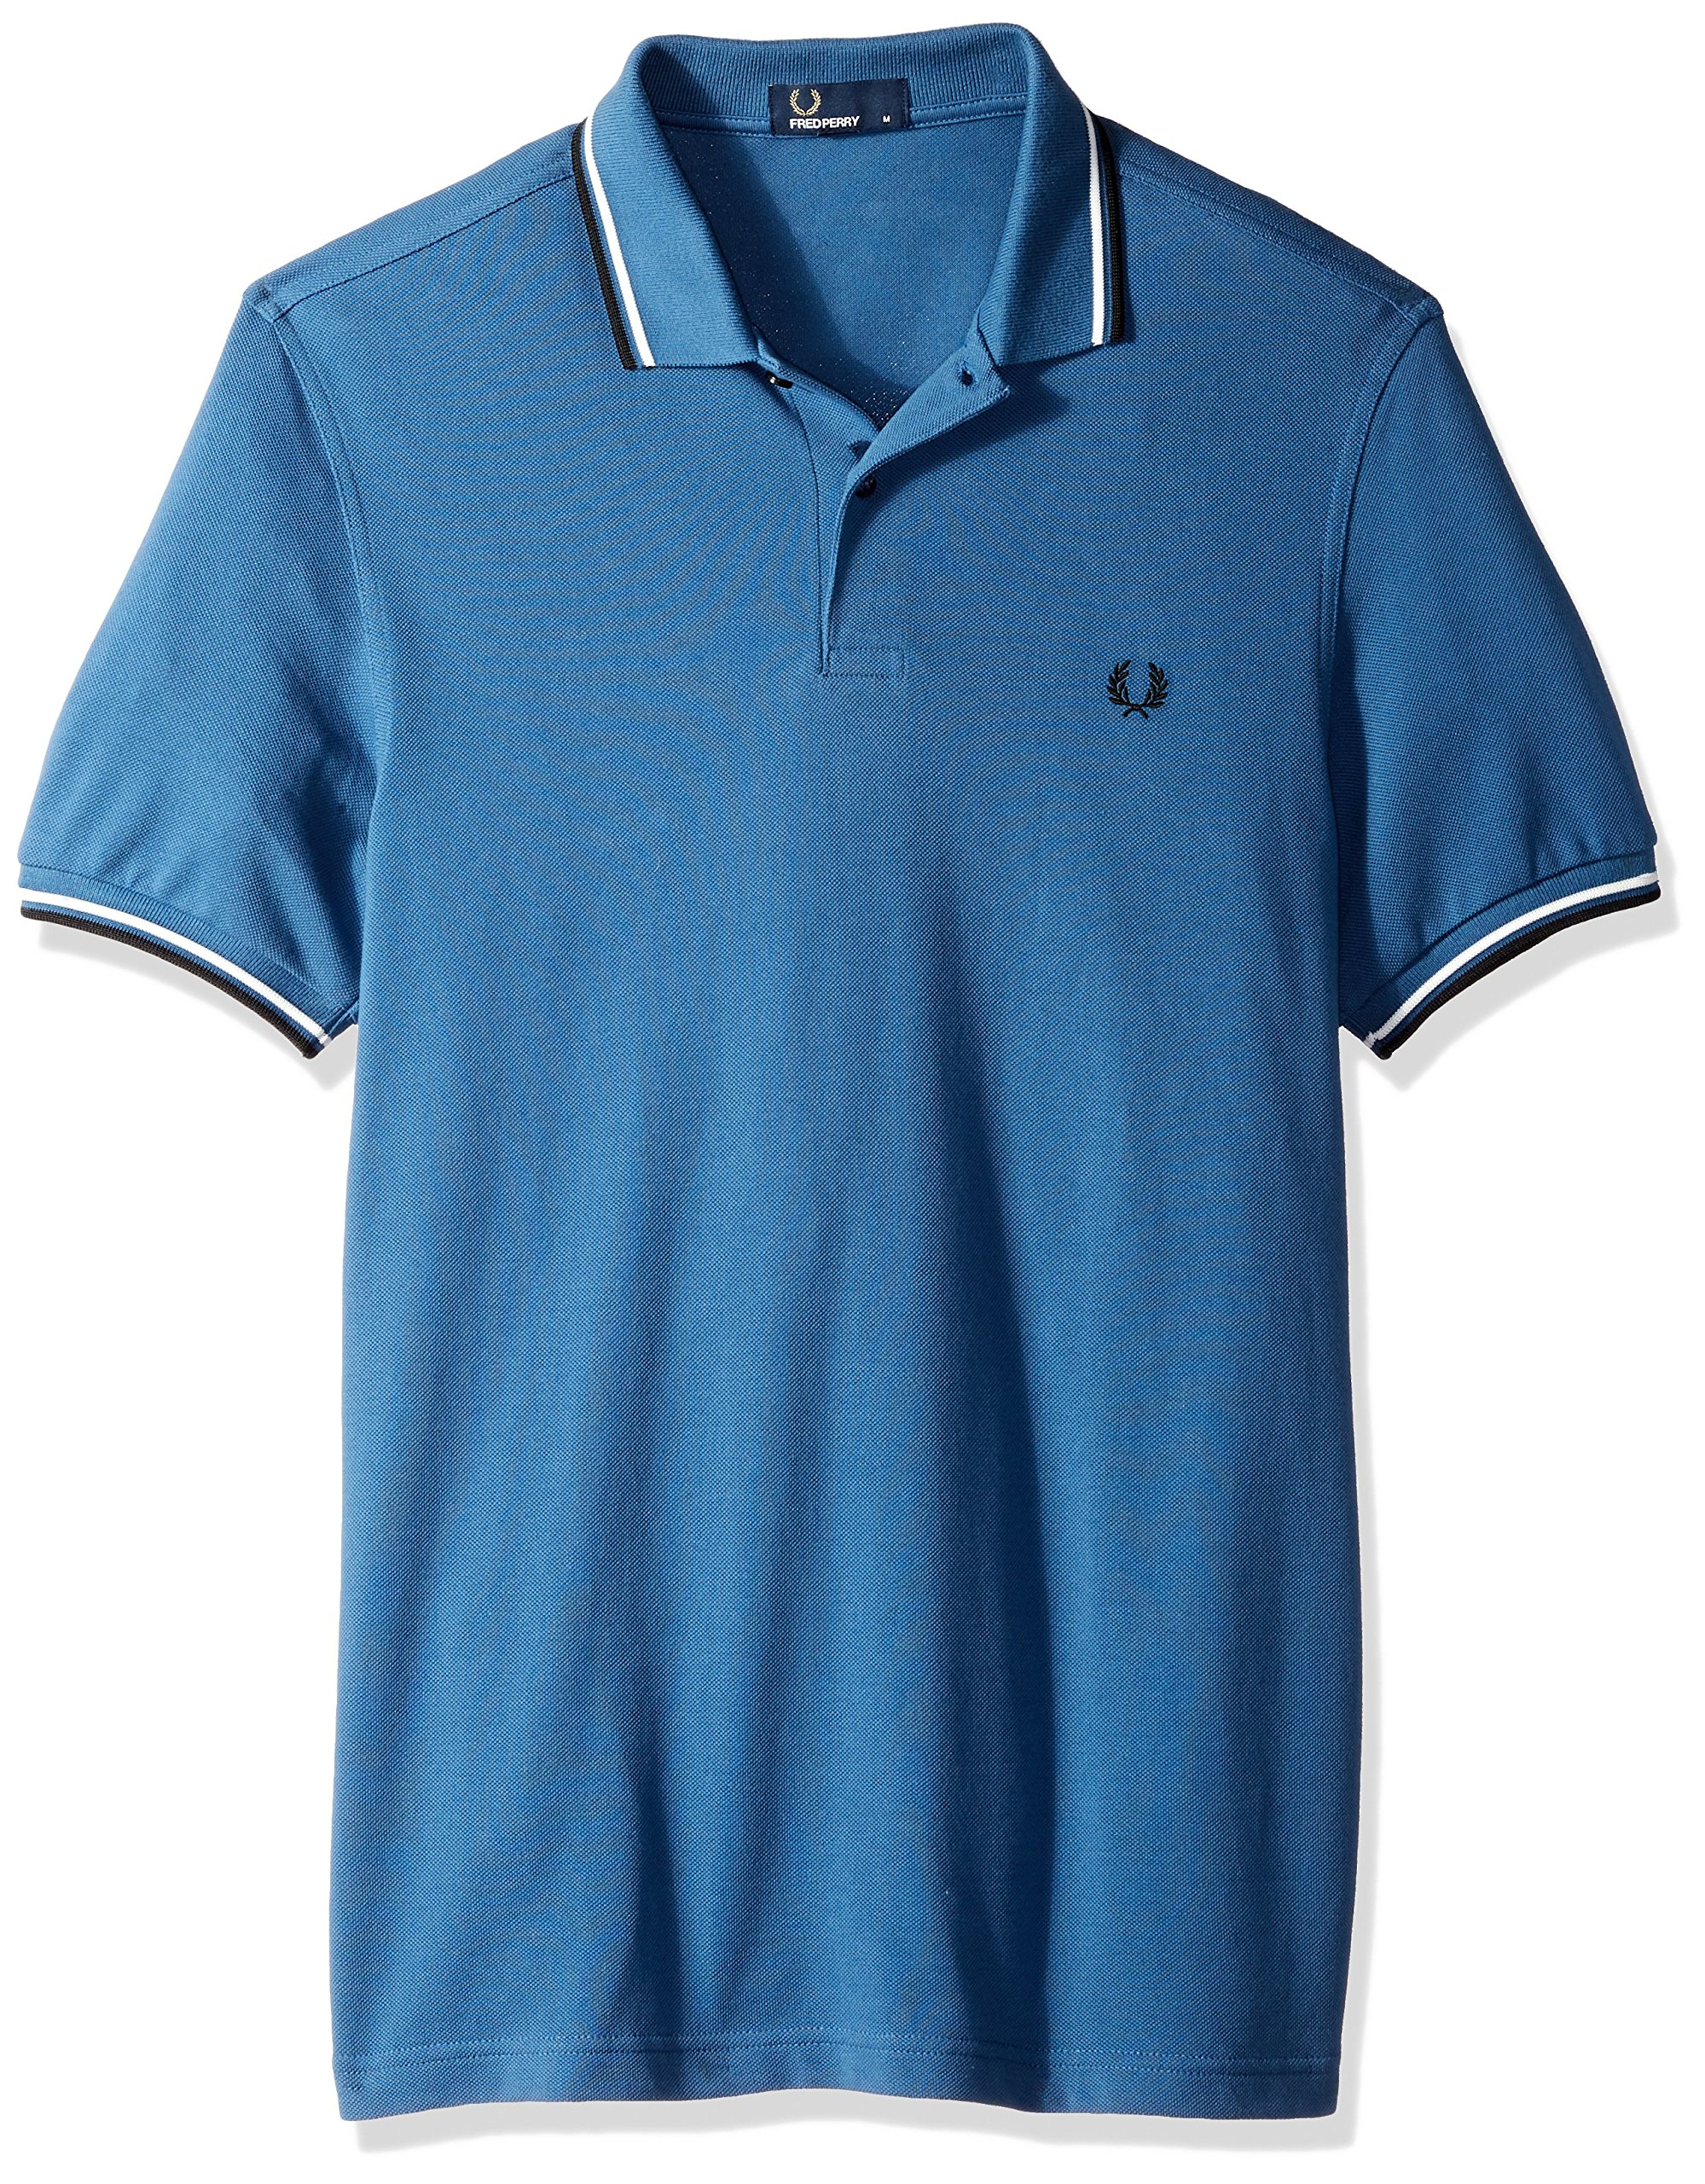 Fred Perry Men's Twin Tipped Shirt, Midnight Blue, Small